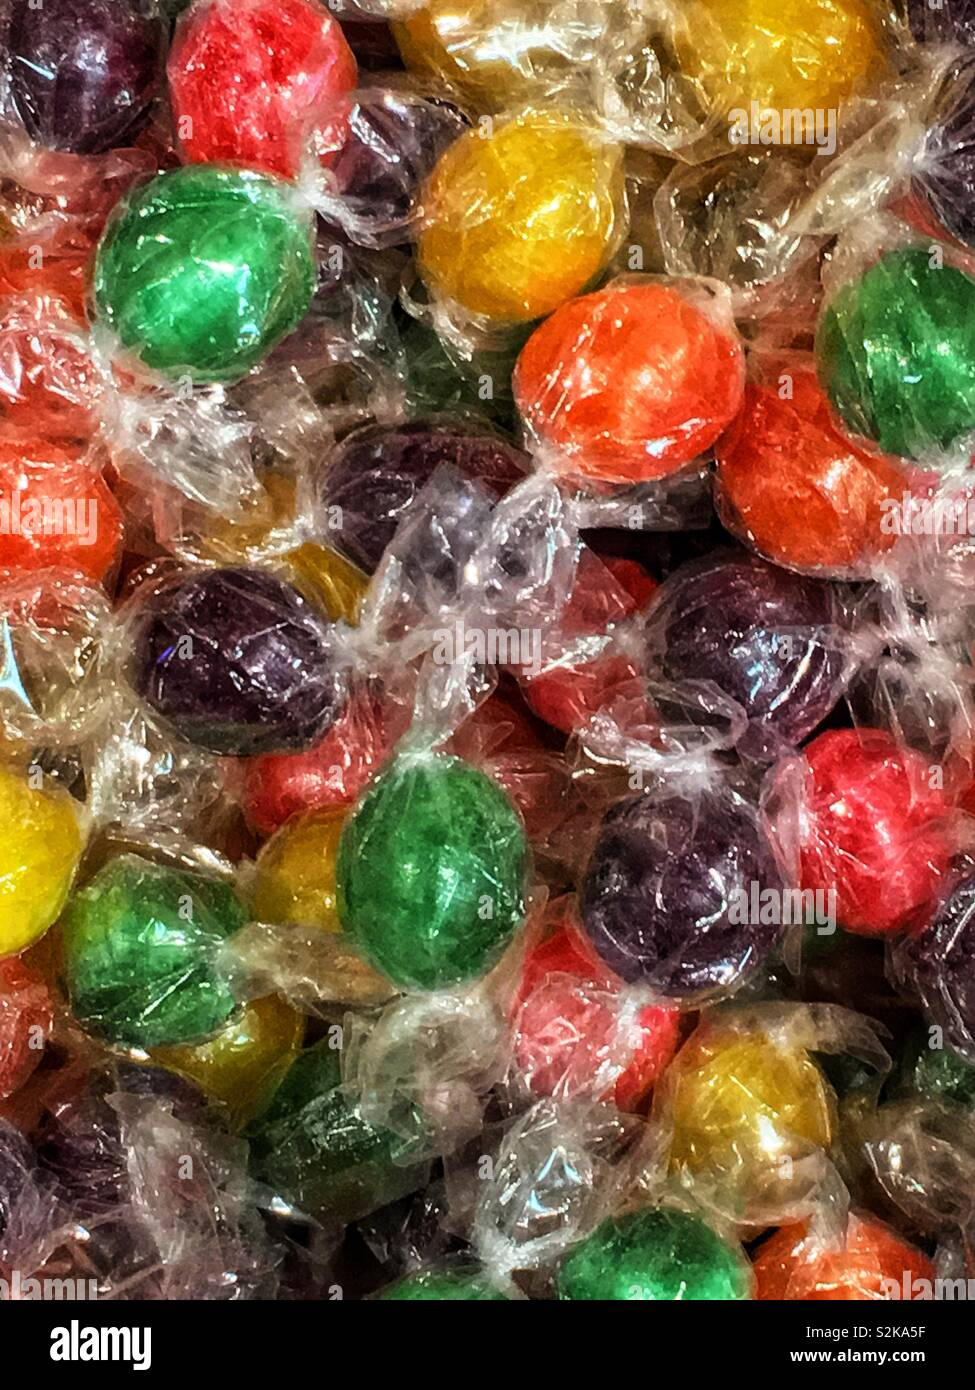 Full frame of green, purple, yellow, and orange individually wrapped hard candies. - Stock Image